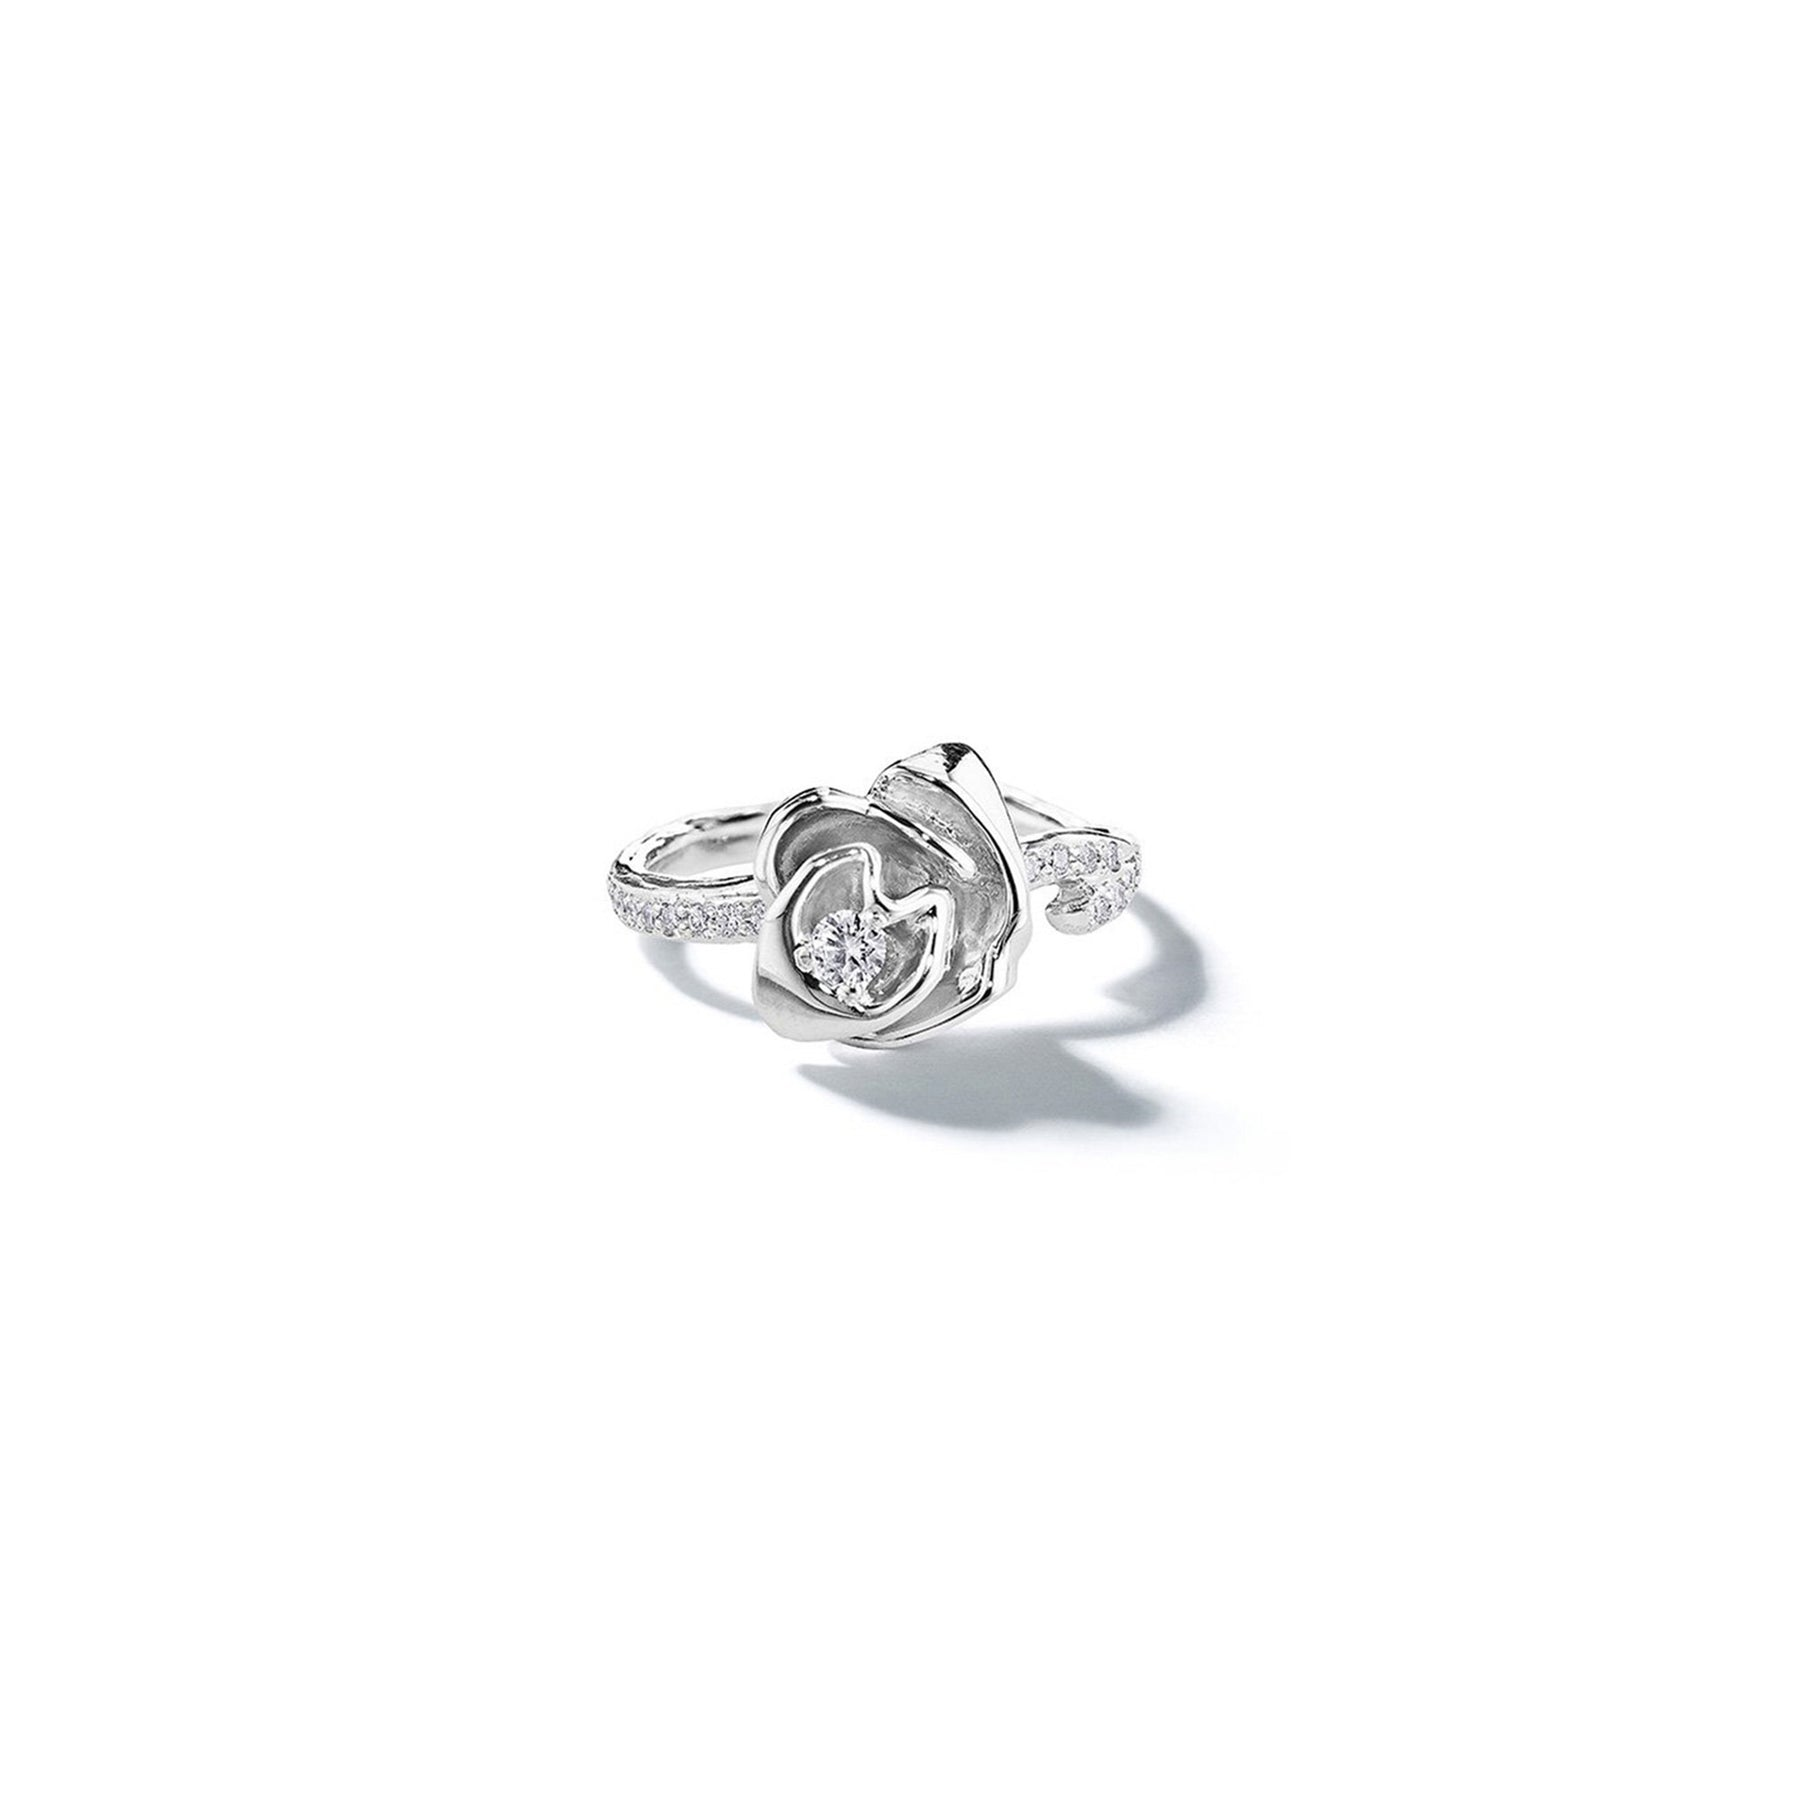 Wonderland-Mimi-Rose-Pave-Diamond-Ring_18k White Gold